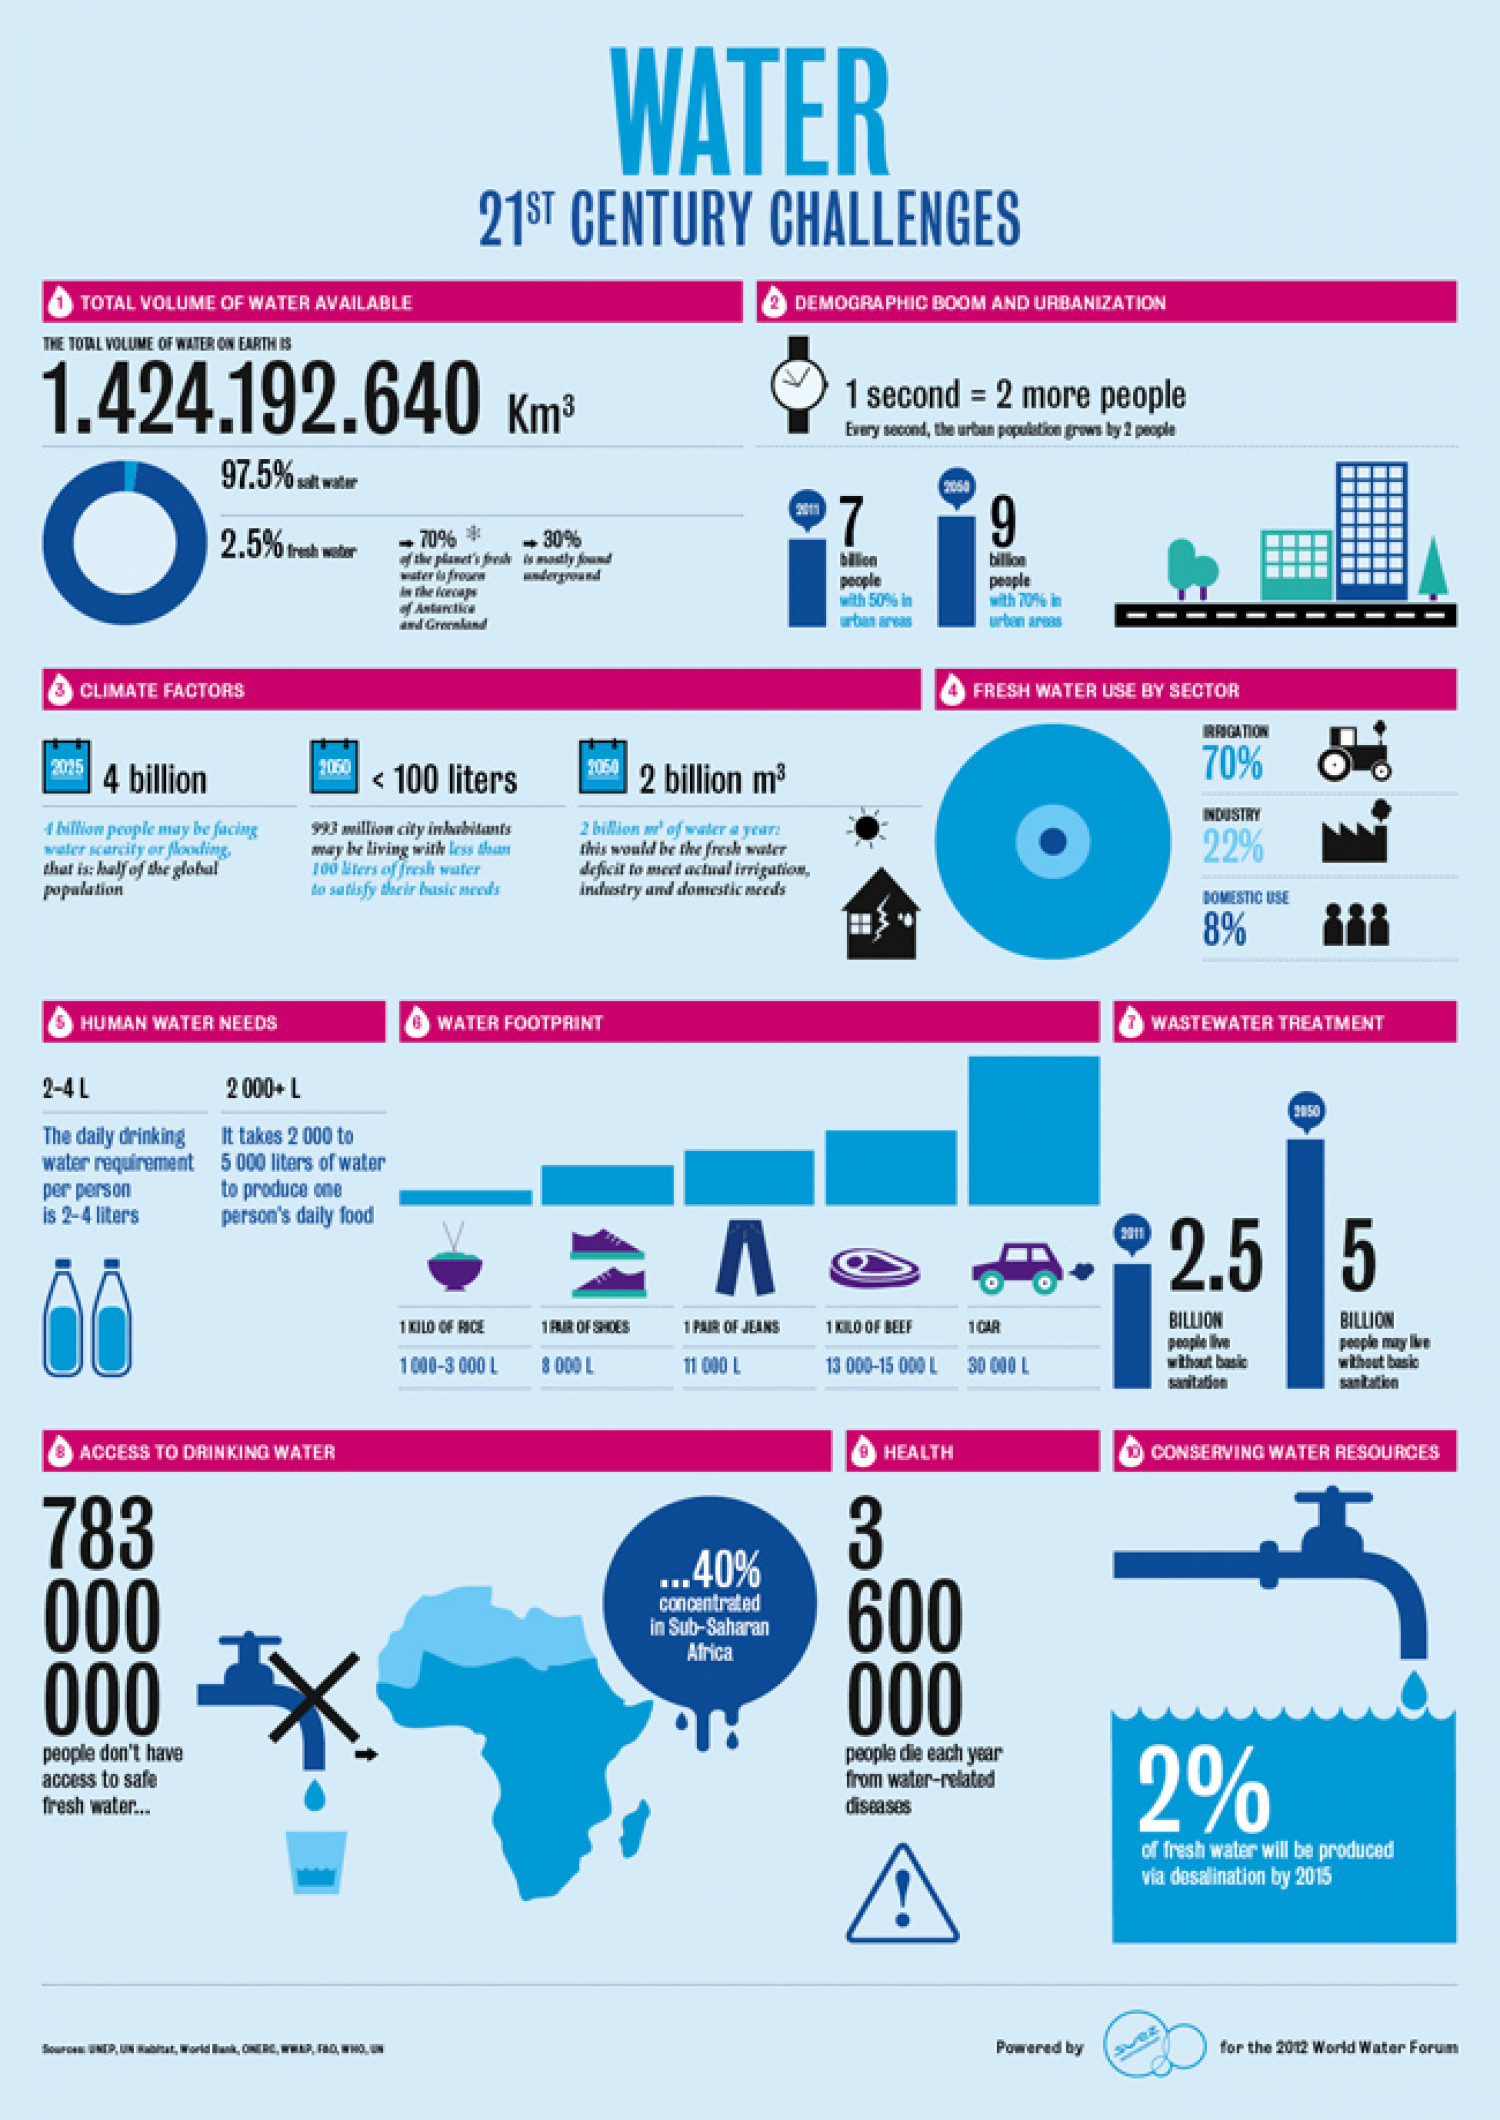 Water 21st Century Challenges Infographic